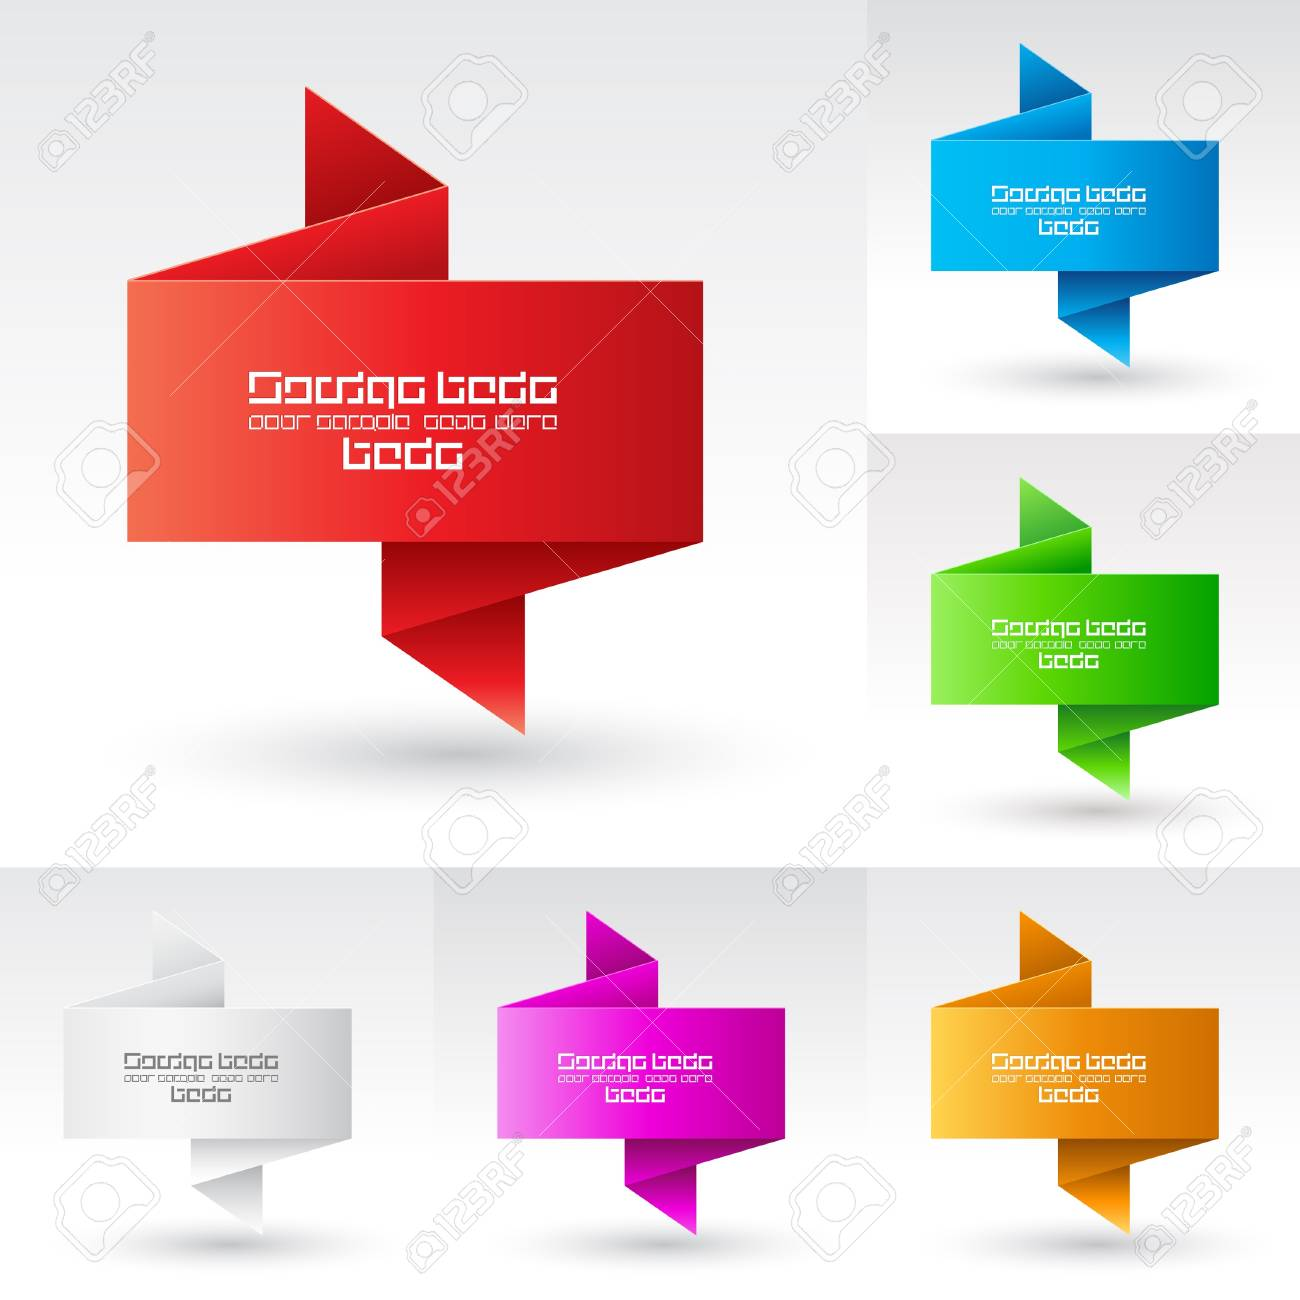 Banners set. Illustration on white background for design Stock Vector - 9546471